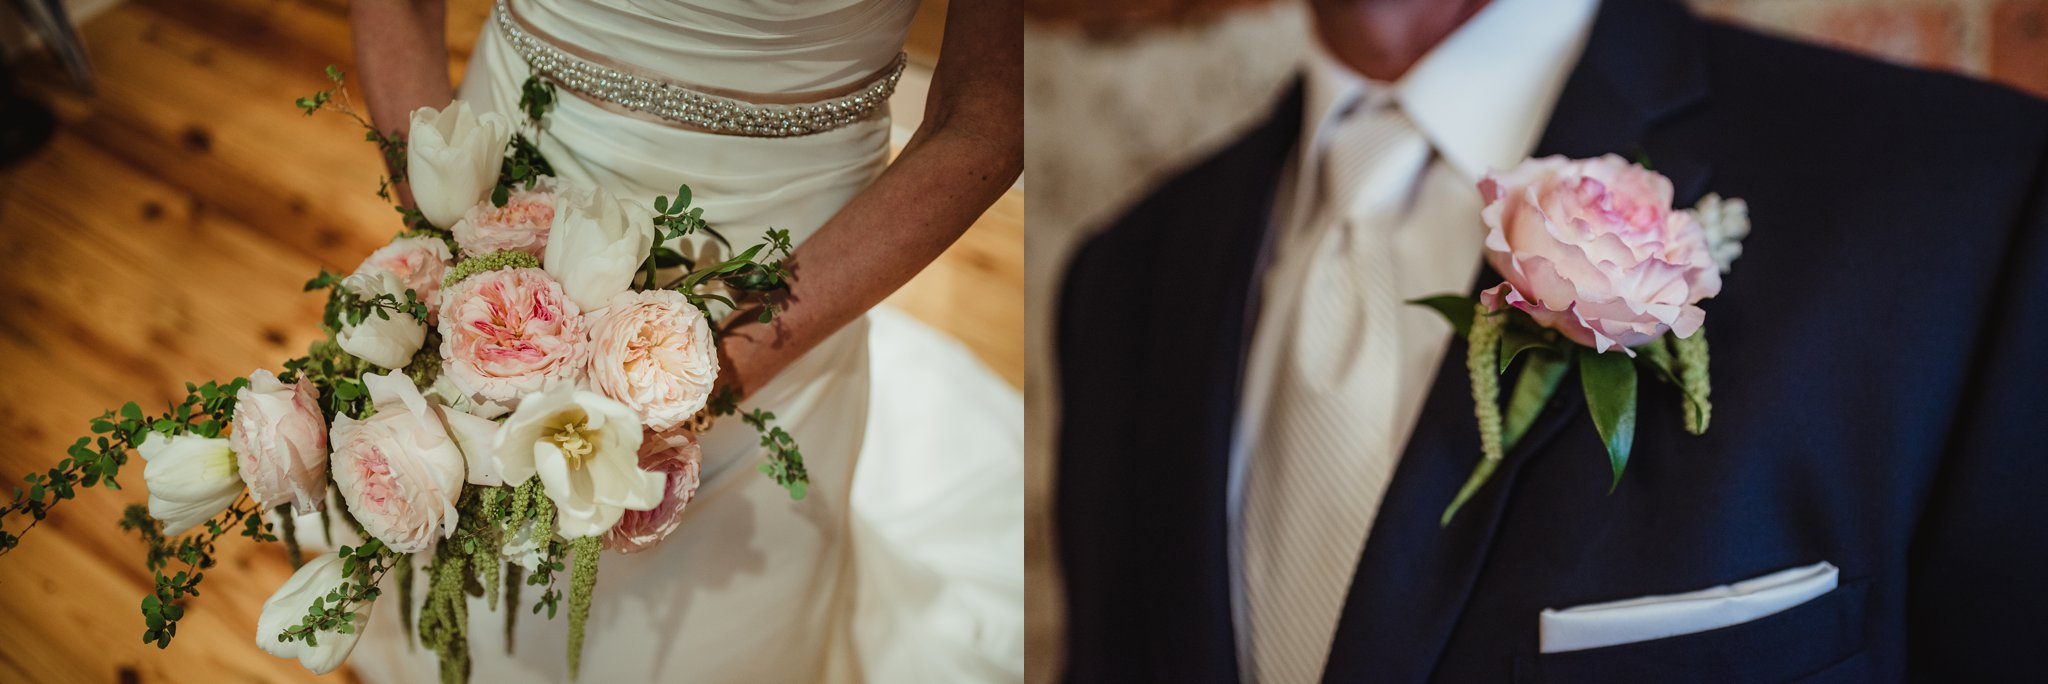 The bride and groom show off their wedding flowers before their ceremony at Cross and Main, images taken by Rose Trail Images.